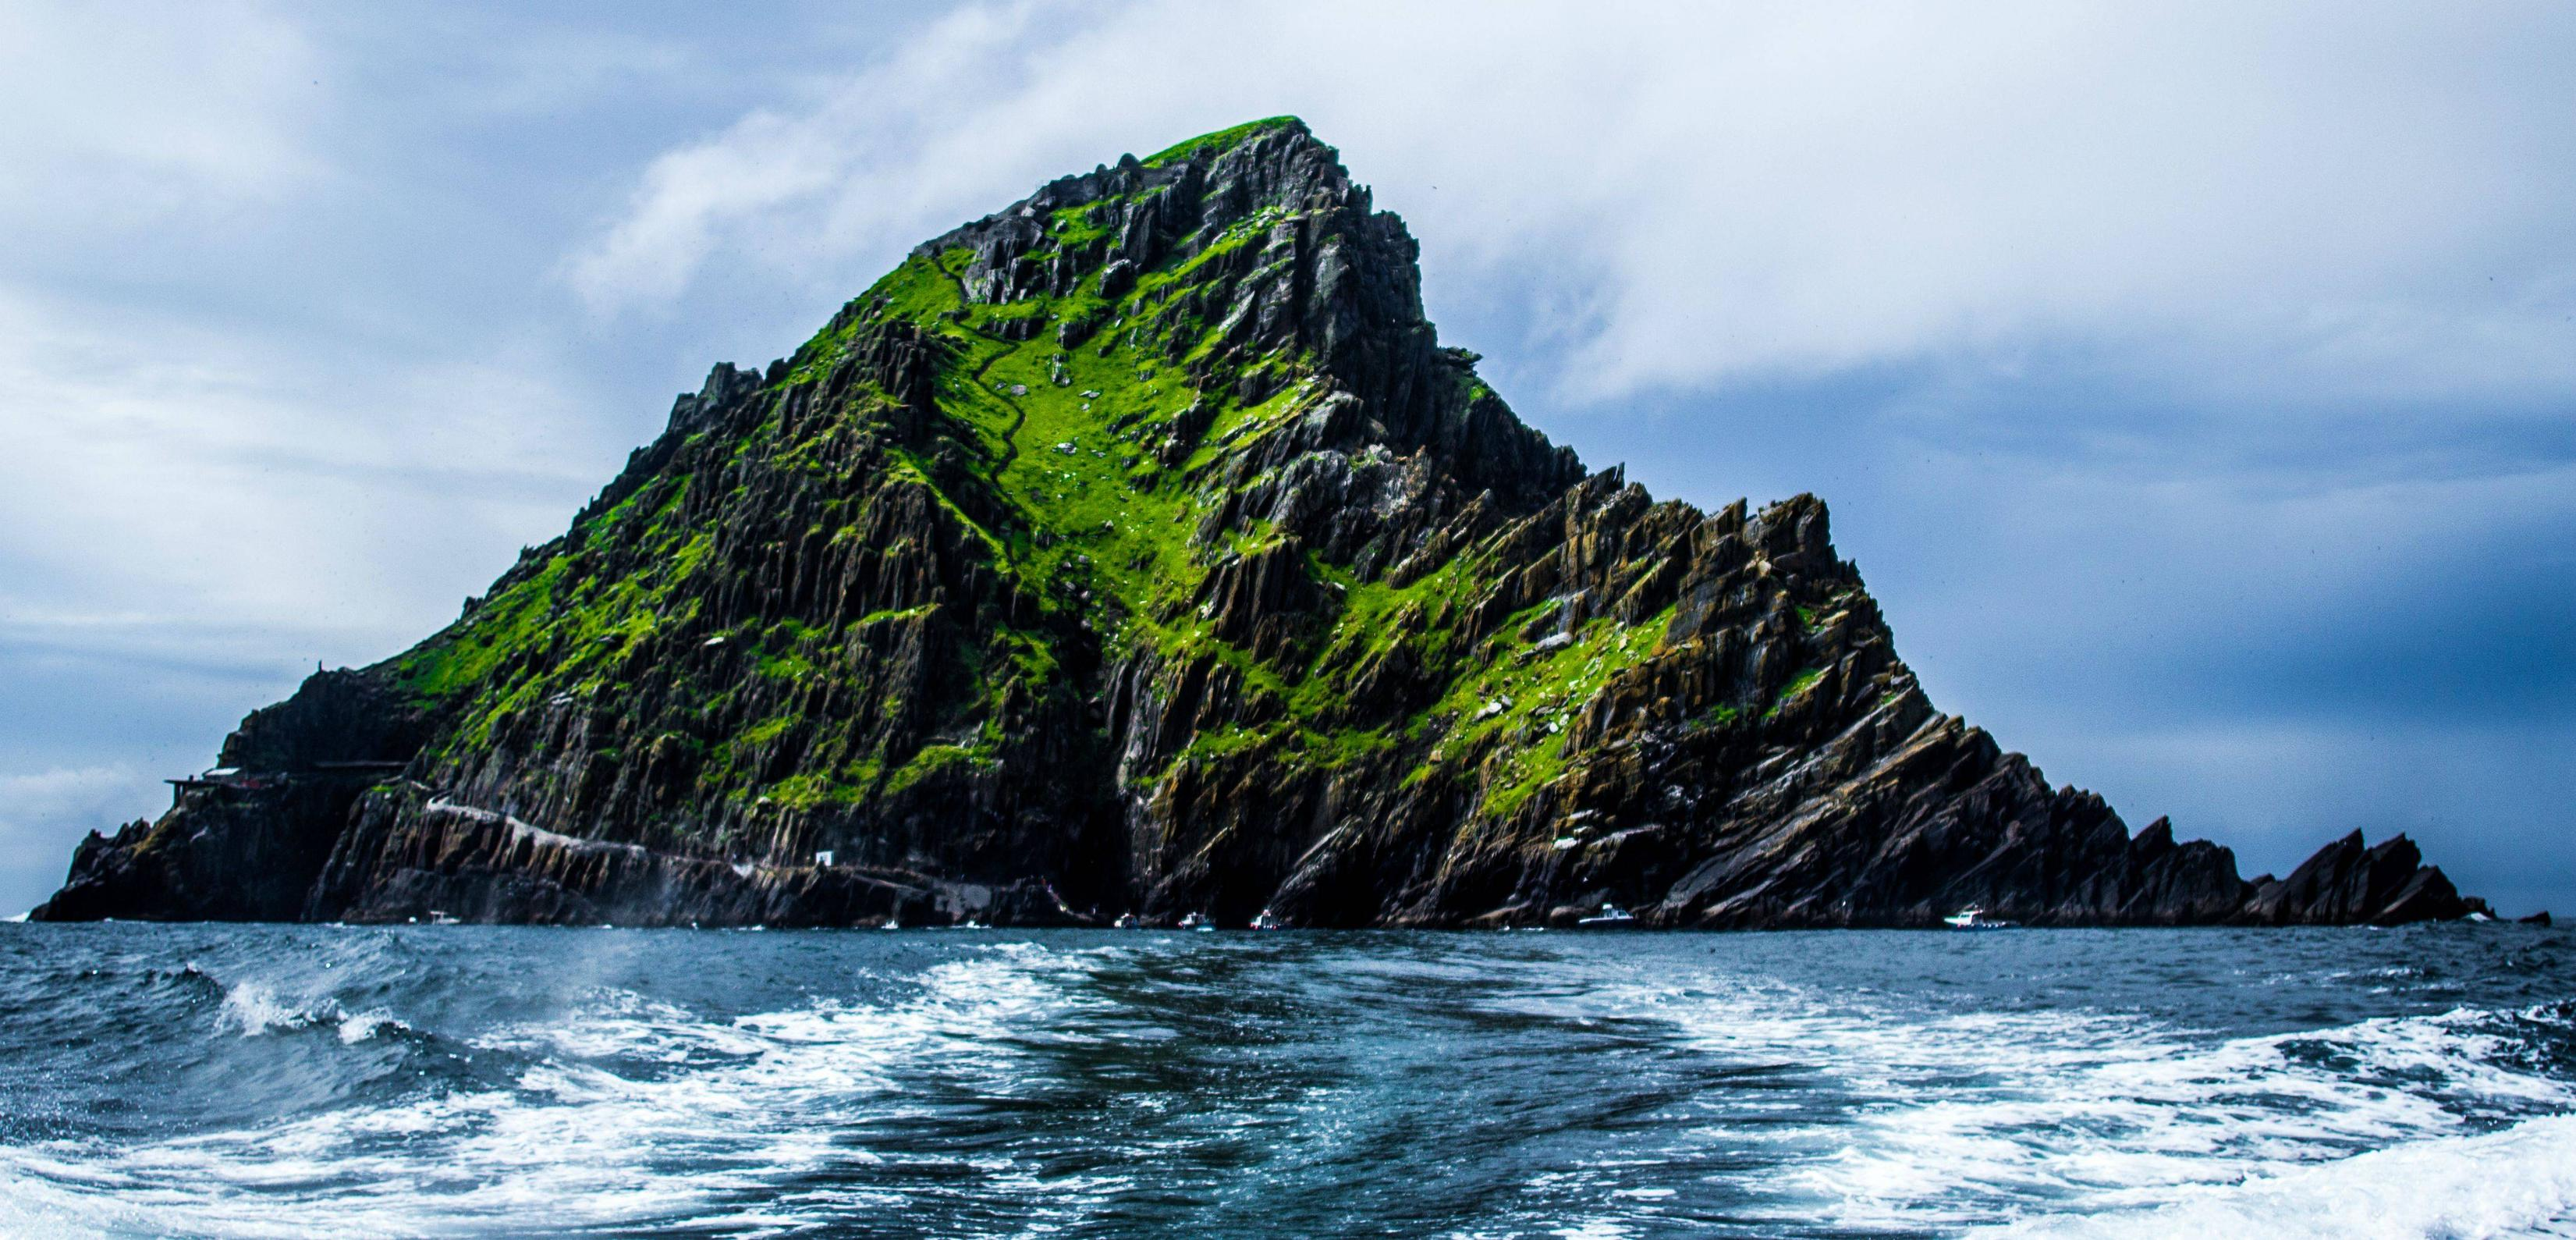 Episode VII Filming on Skellig Michael? Send in the Navy ...